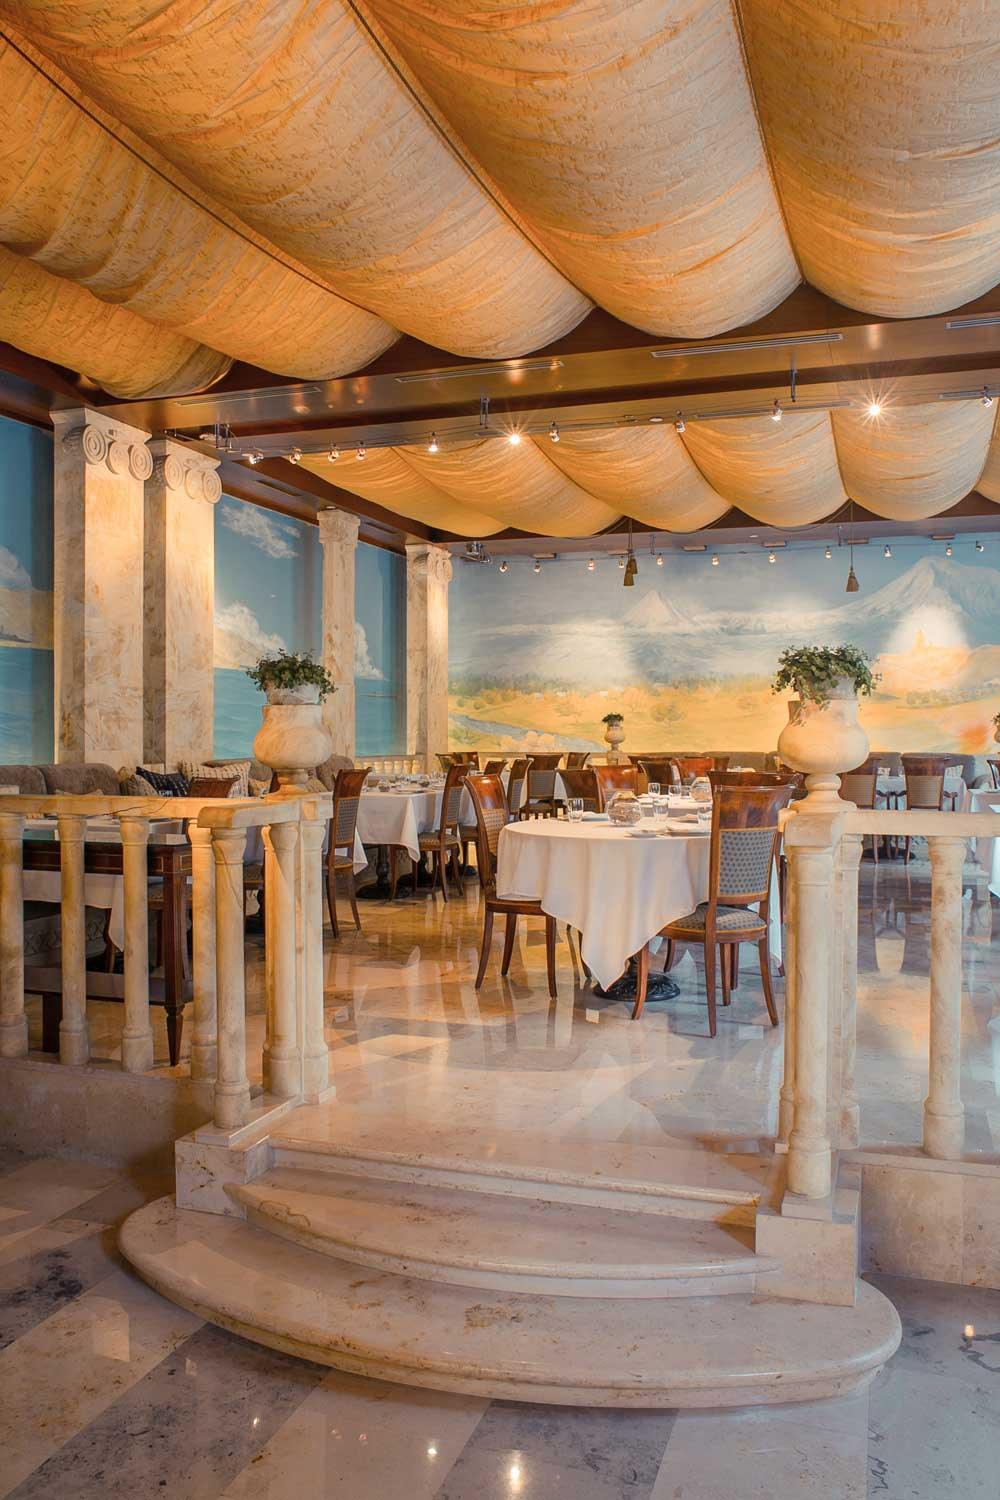 Cafe Ararat at Ararat Park Hyatt Moscow, Moscow, Russia